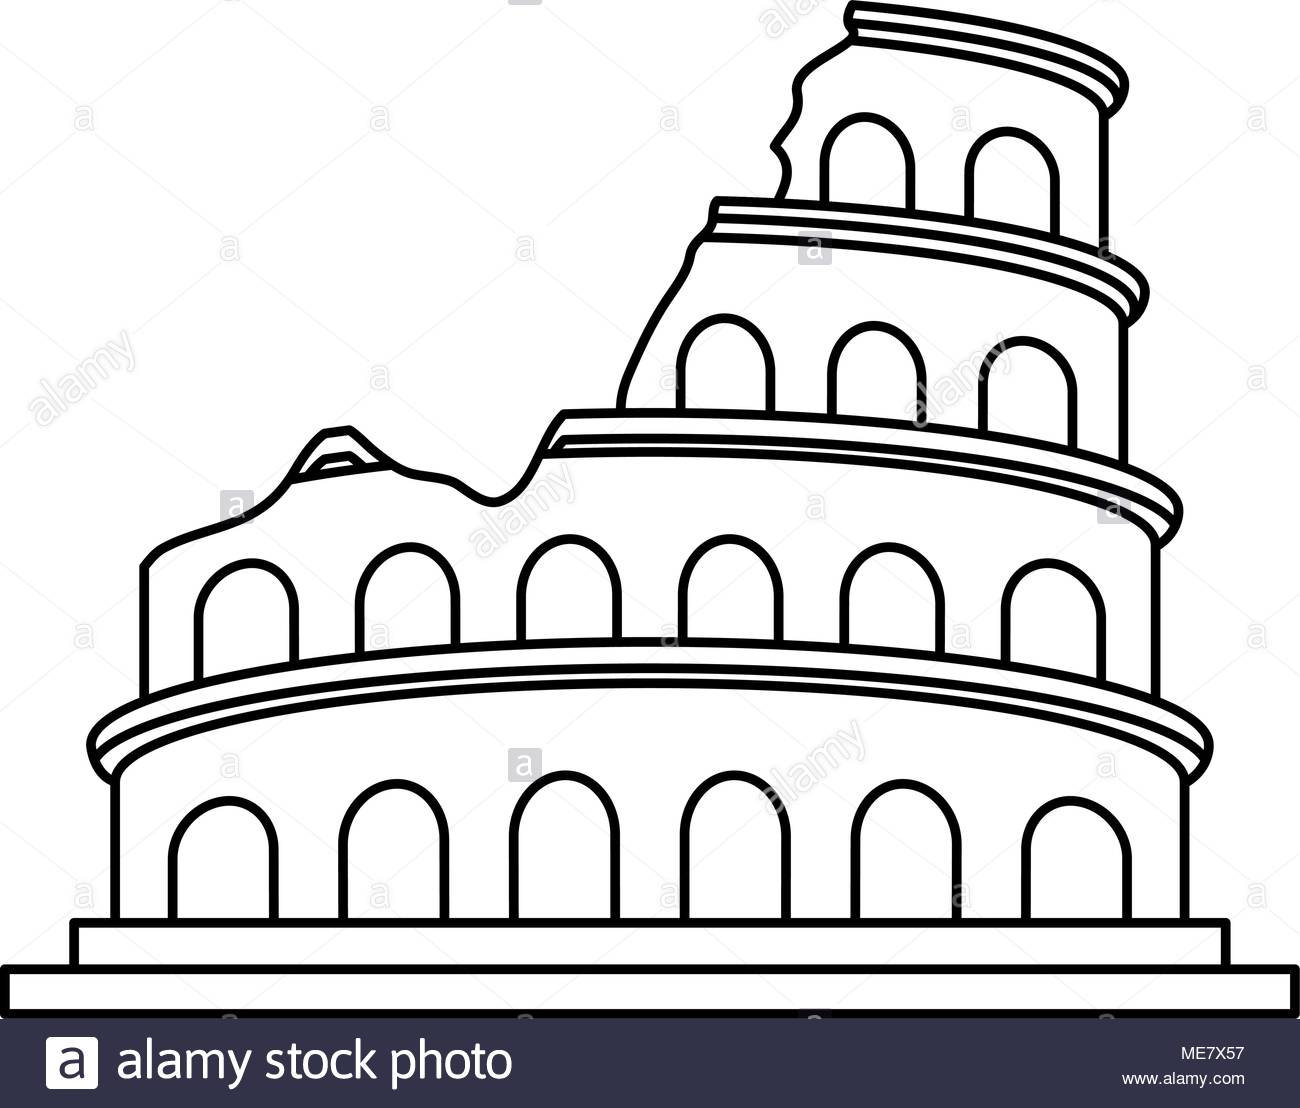 1300x1108 Coliseum Black And White Stock Photos Amp Images